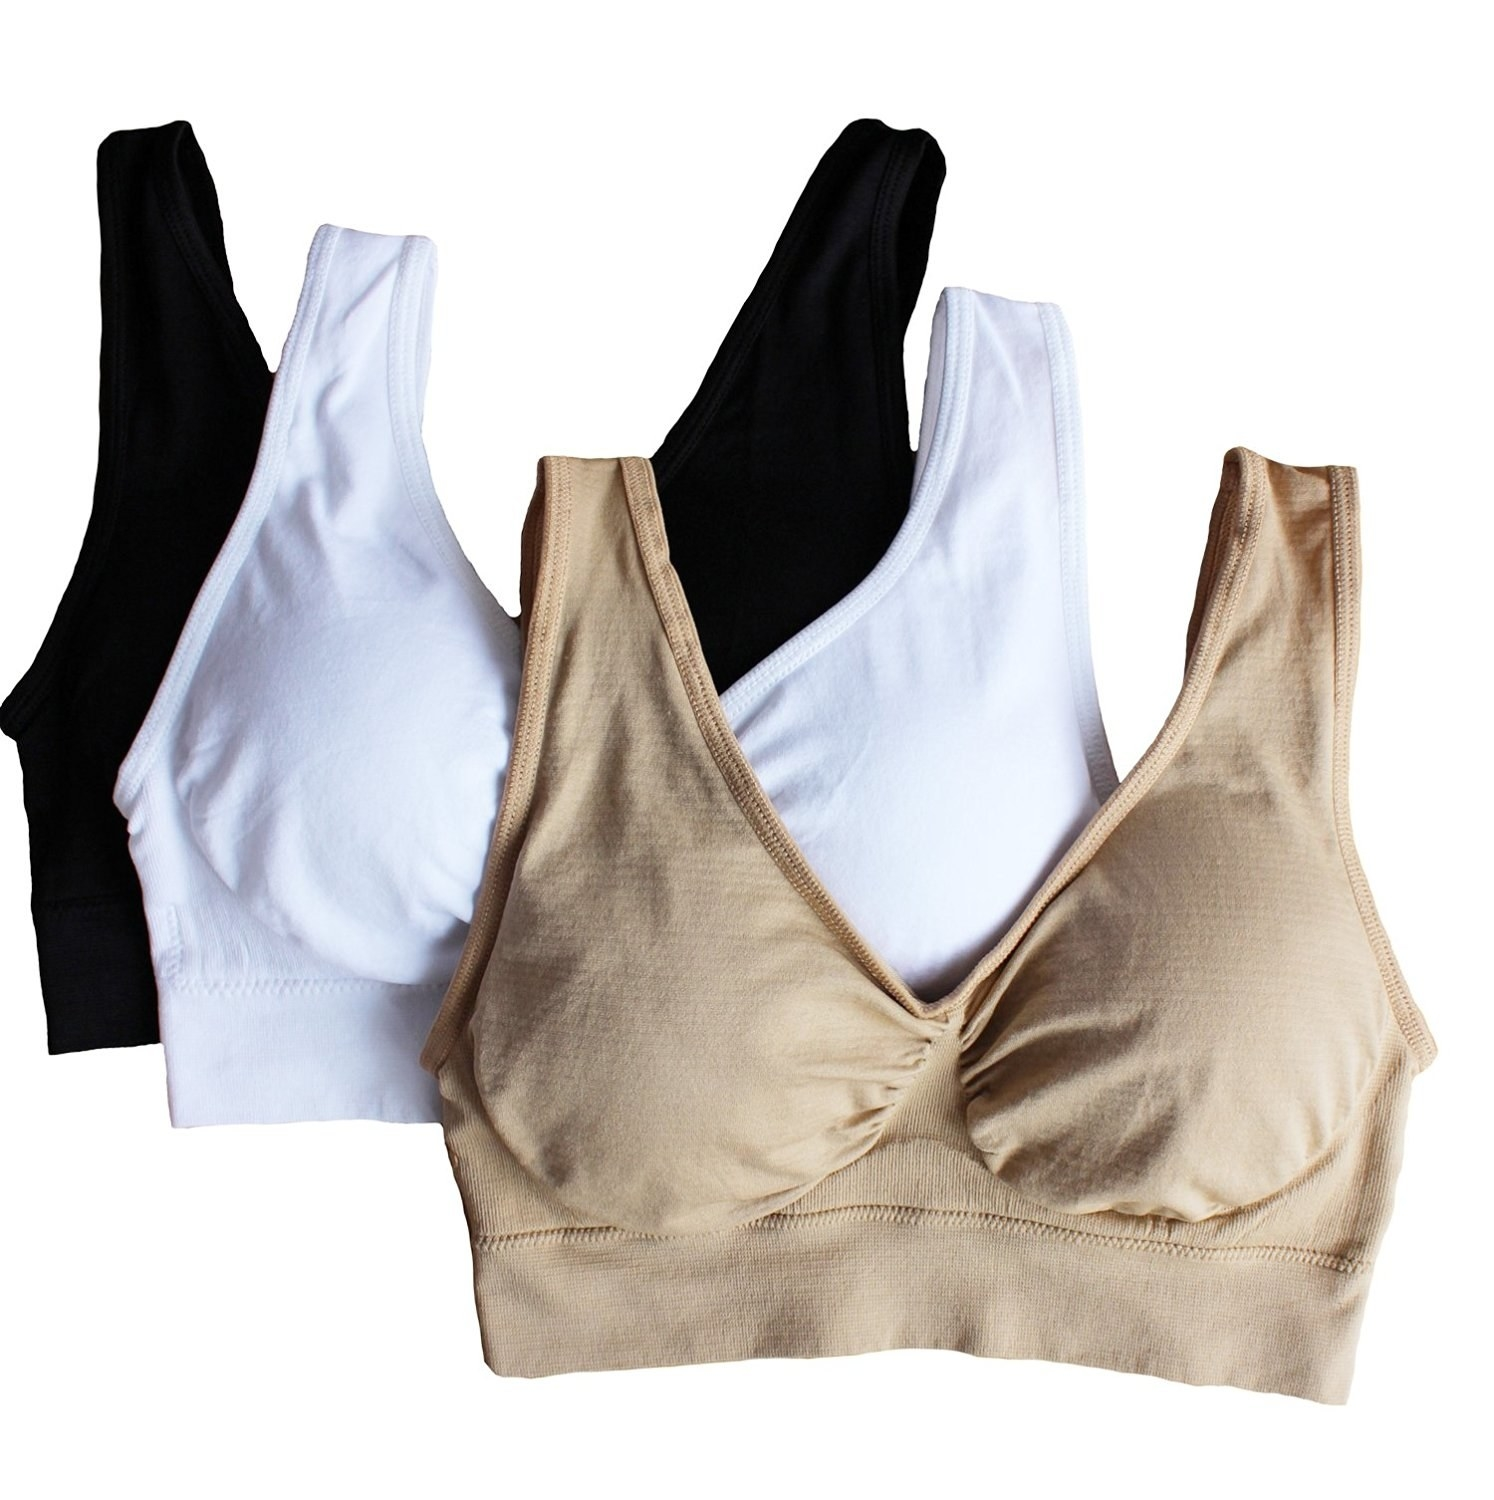 352b6bc327 34 Of The Best Places To Buy Bras Online